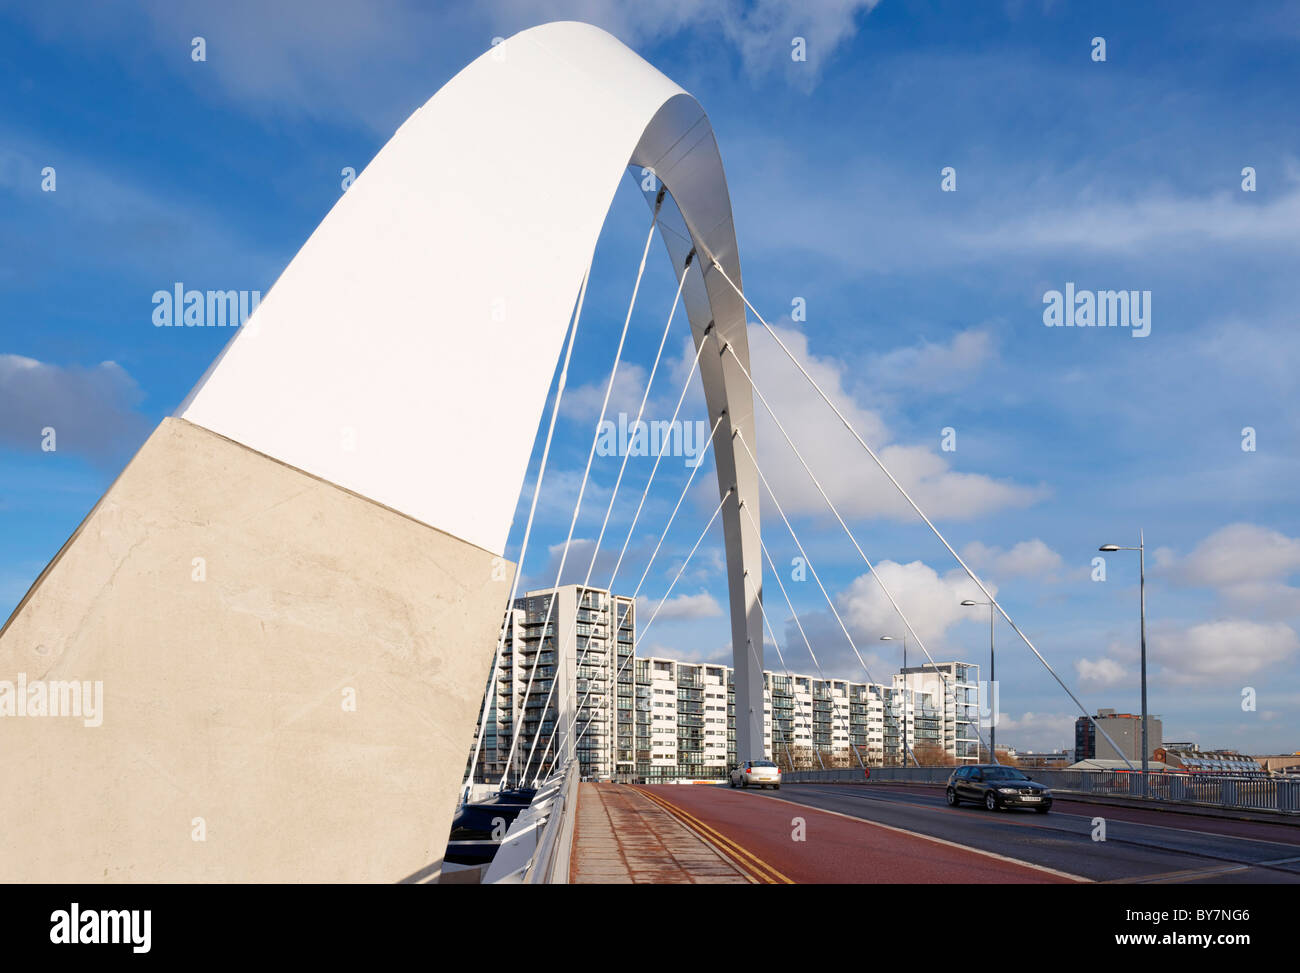 The Clyde Arc Bridge which crosses the River Clyde and the India Quay Building, Glasgow, Scotland, UK. Stock Photo